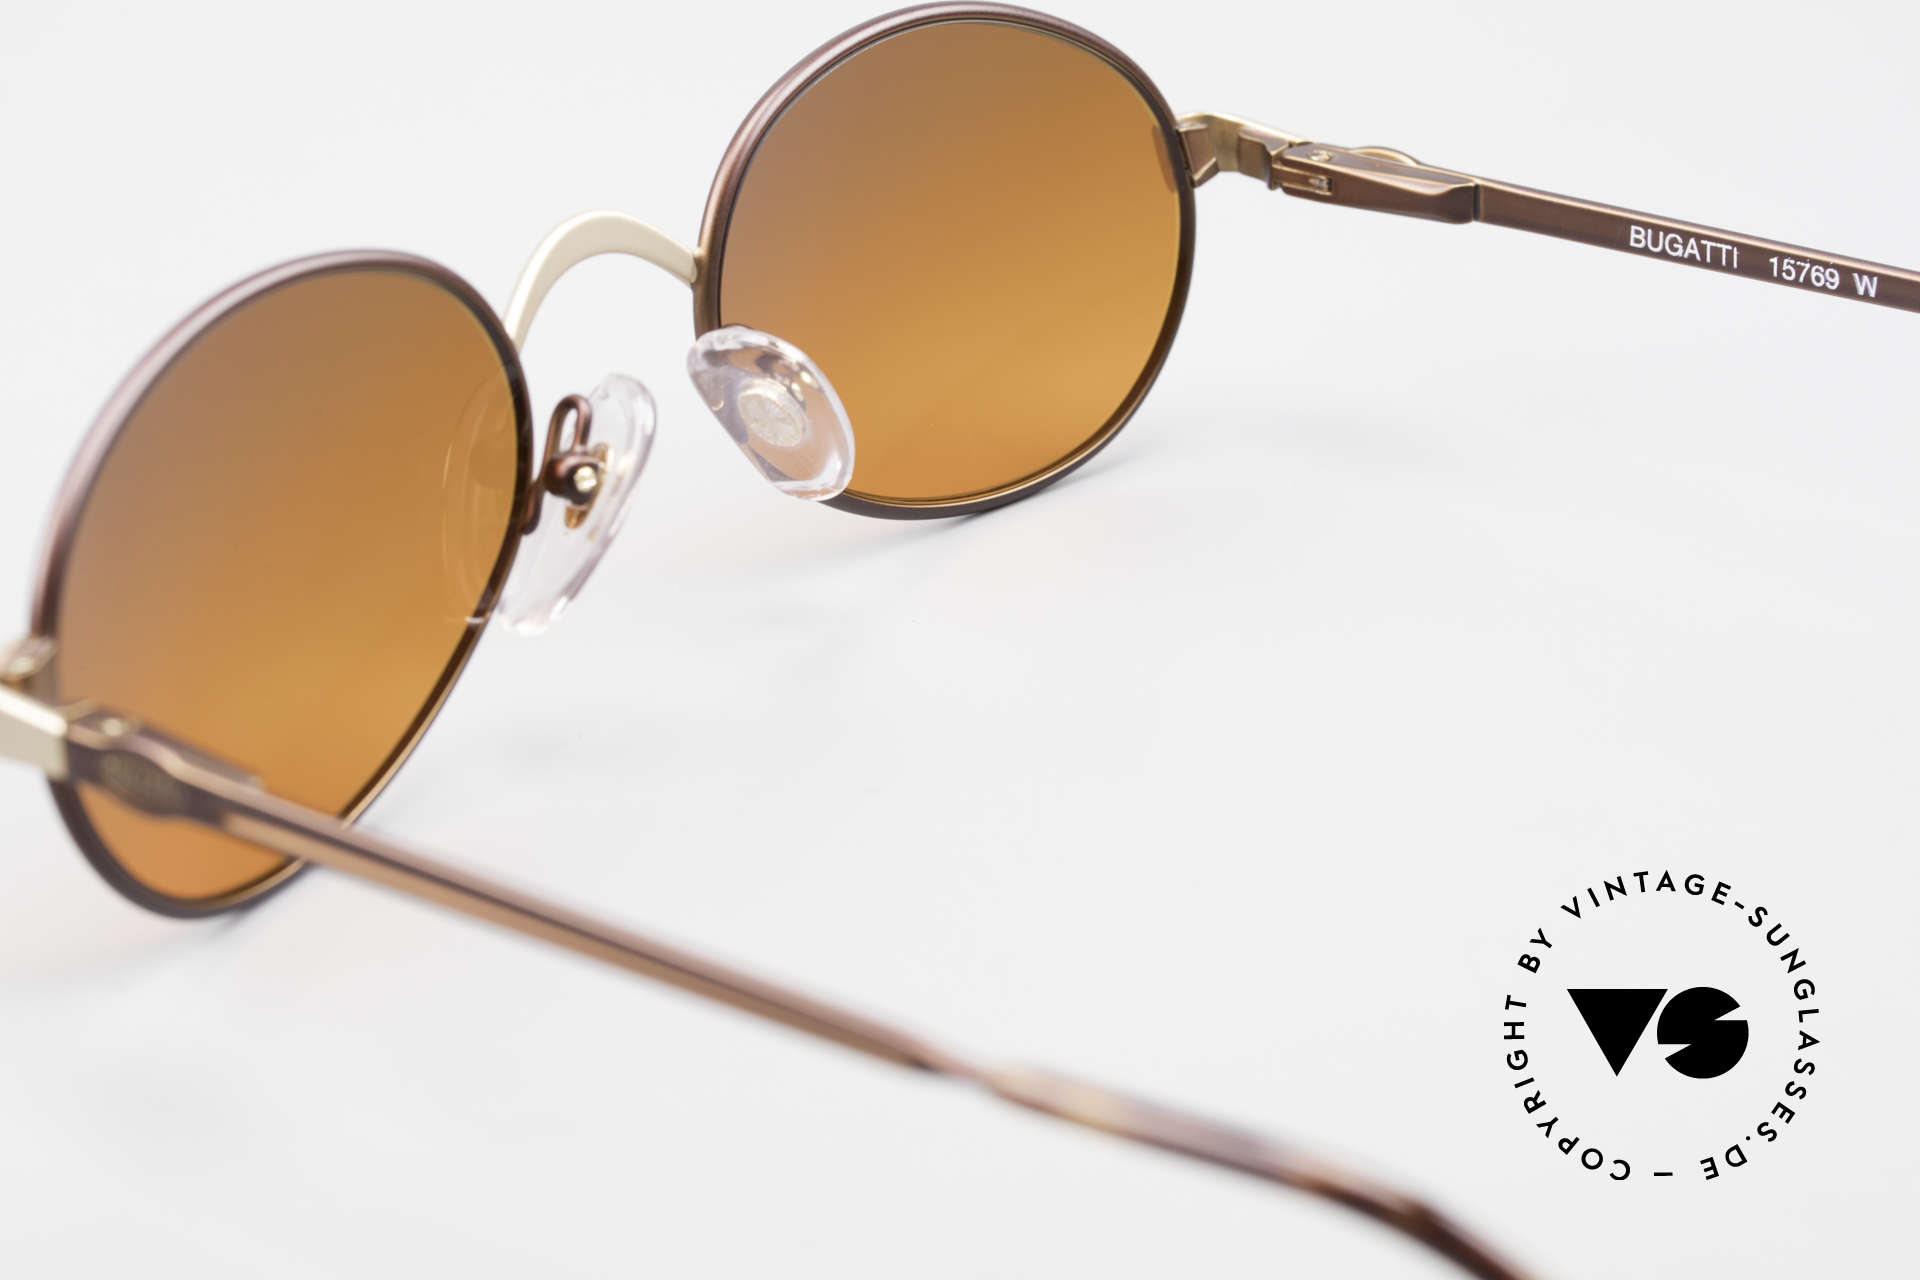 Bugatti 15769 Bronze Brown Metallic Frame, the fancy SUNSET sun lenses can be replaced optionally, Made for Men and Women